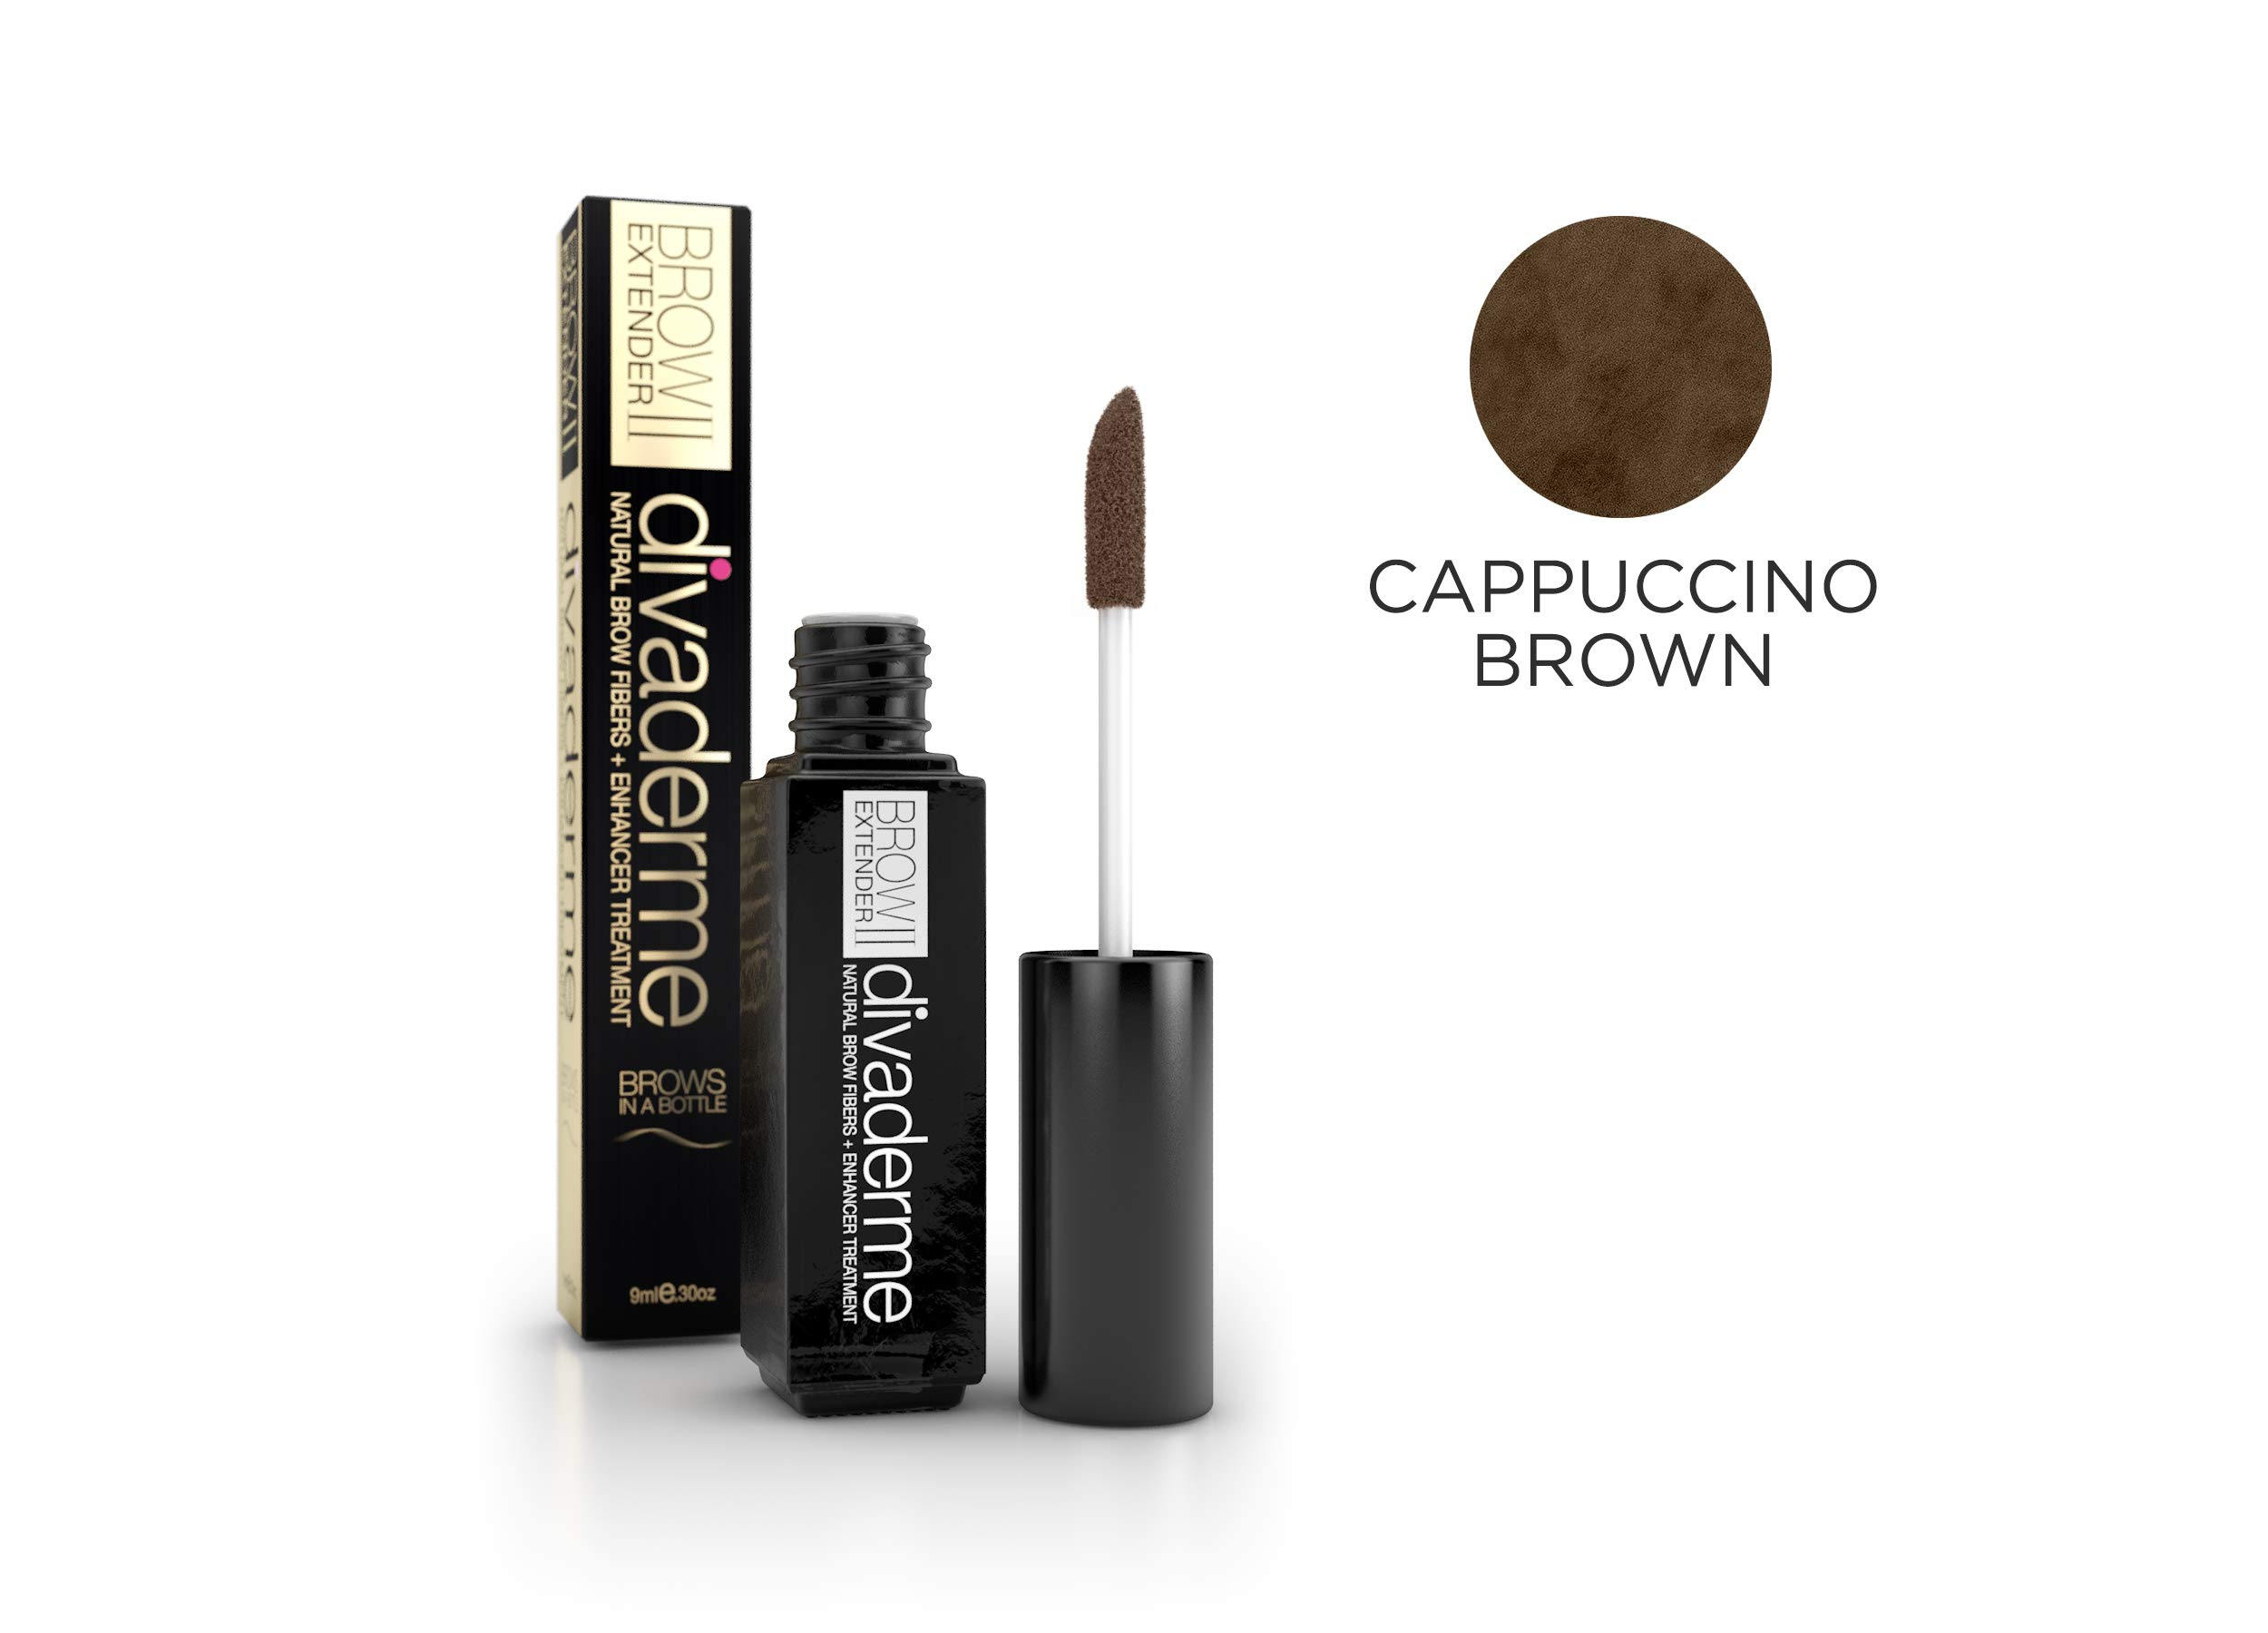 Divaderme BROW EXTENDER II - Cappuccino Brown 2-In-1 Natural Brow Fibers + Eyebrow Enhancer Treatment - Bold Healthy Eyelashes - Helps Grow Strong Eyebrows - Made in USA by divaderme